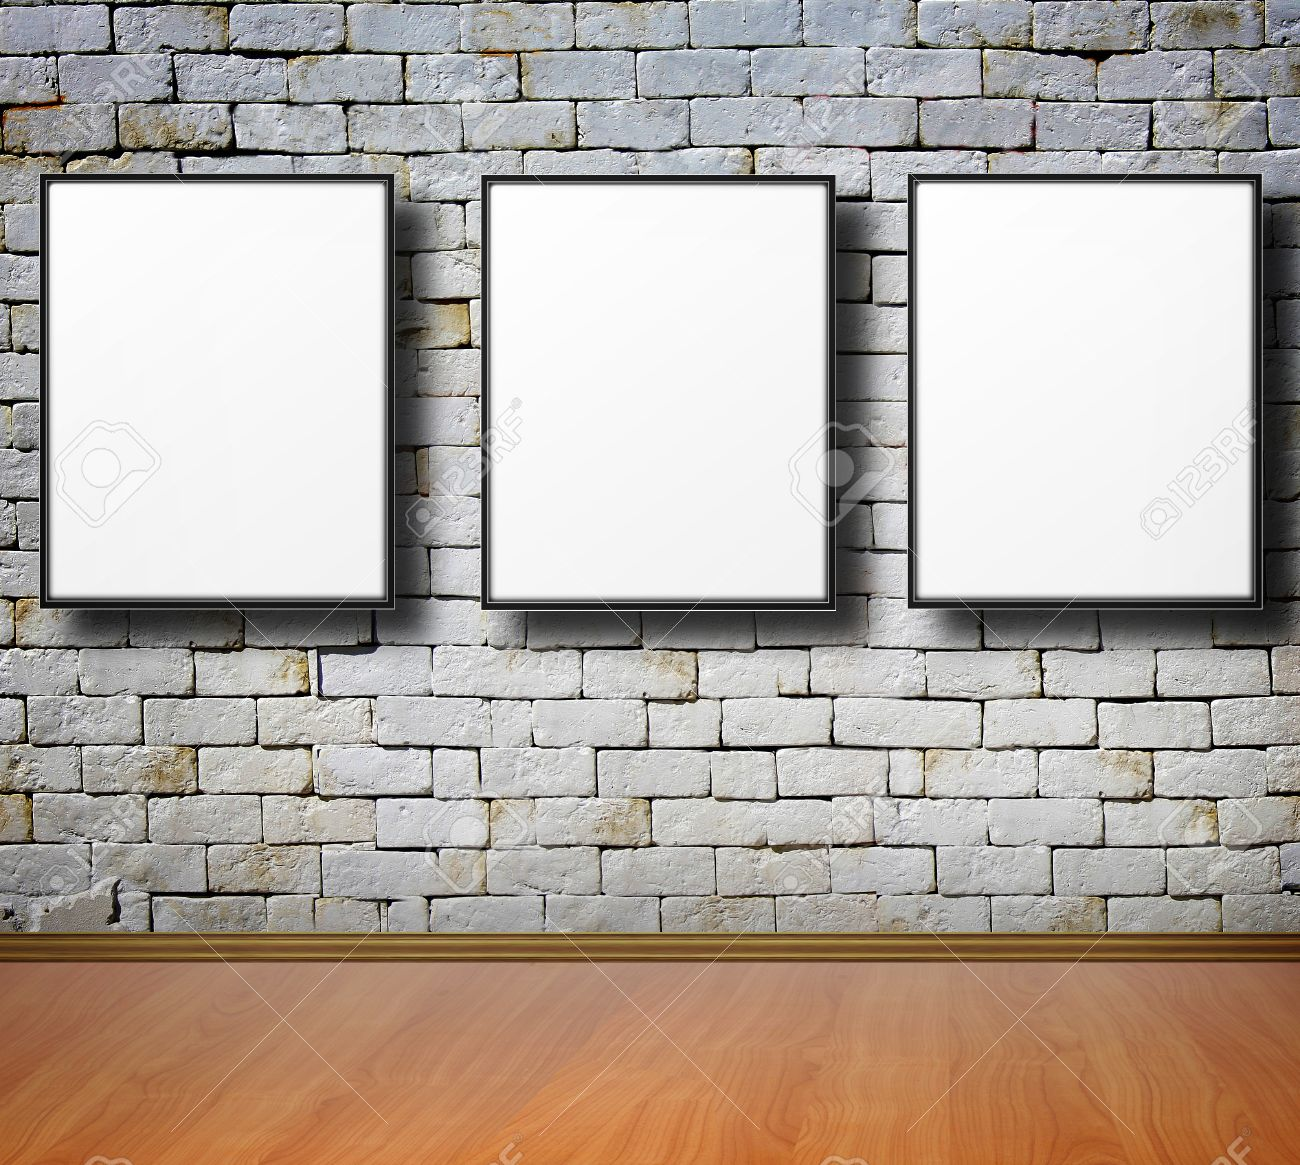 Frames On White Wall Old Brick Stock Photo, Picture And Royalty Free ...